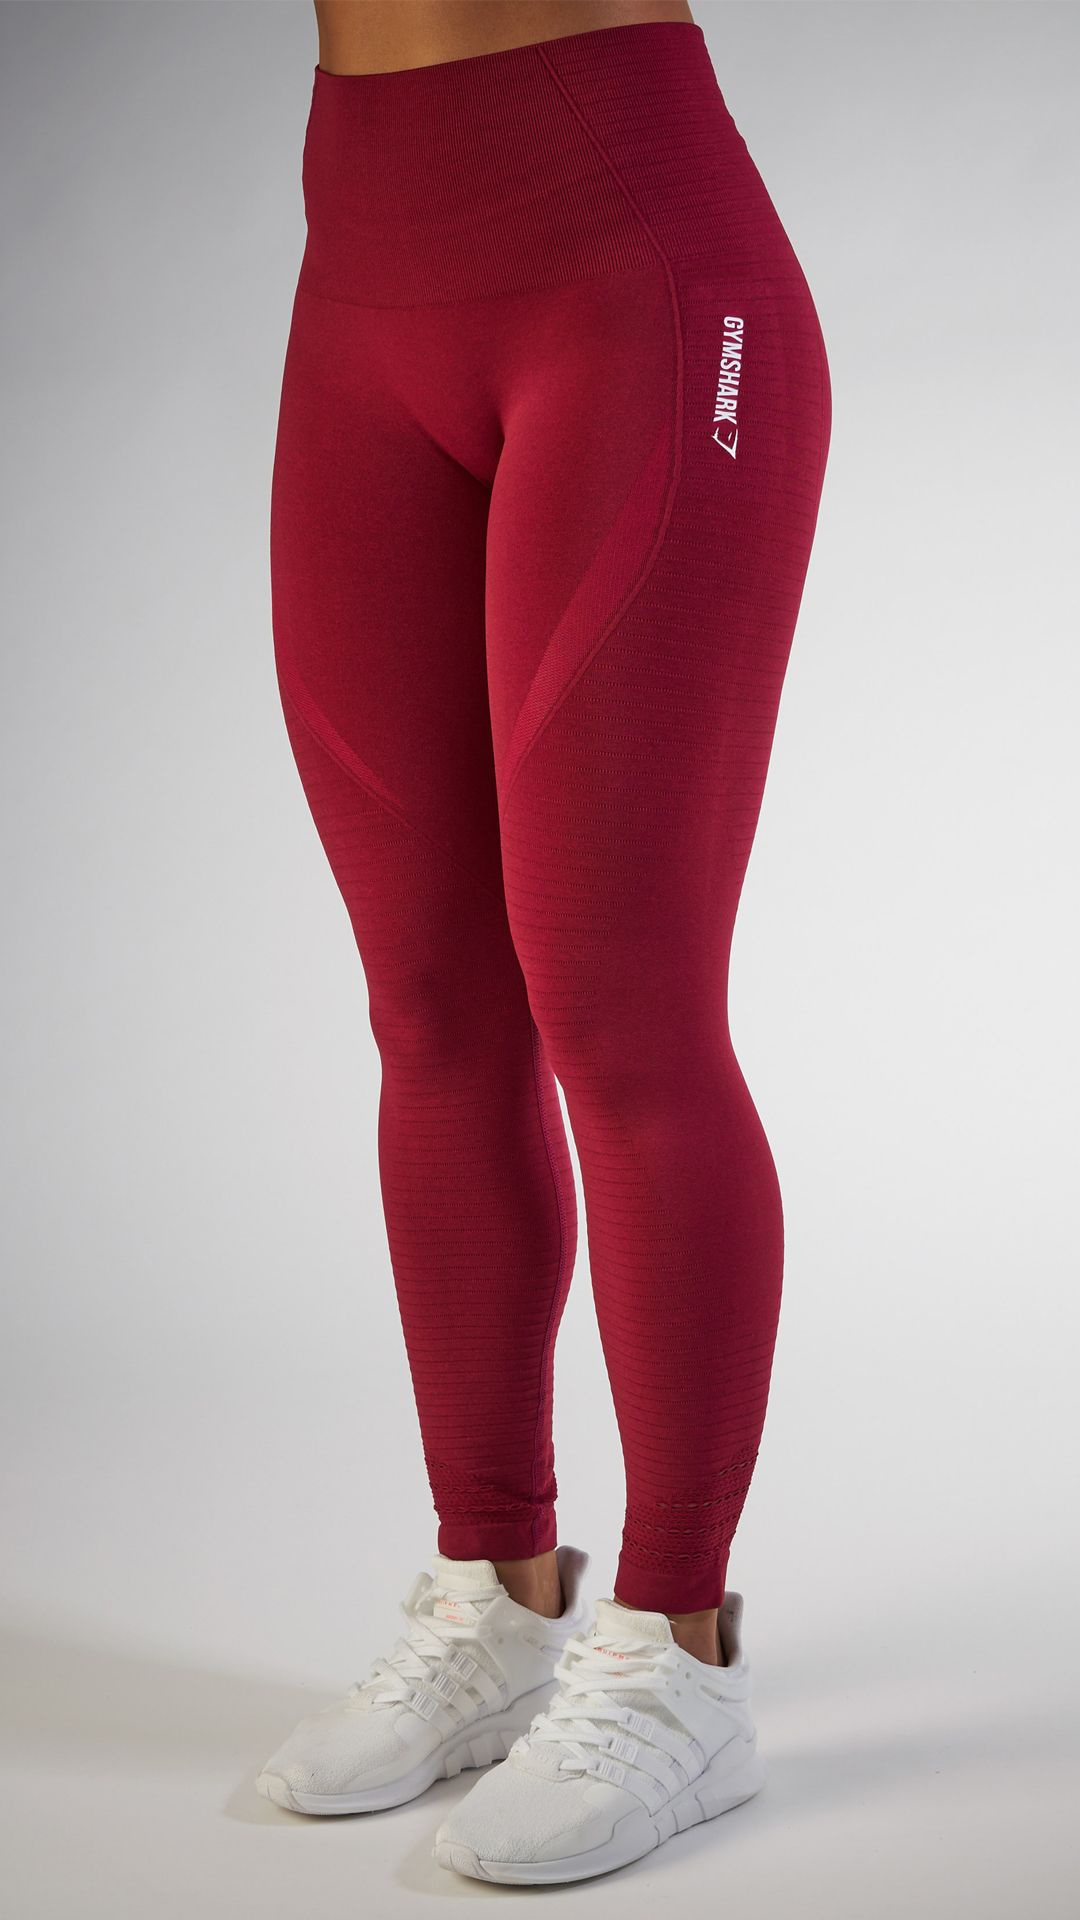 17d0bec121f30 With their stunning and form fitting shape, the Seamless High Waisted  leggings in Beet are beautifully different.